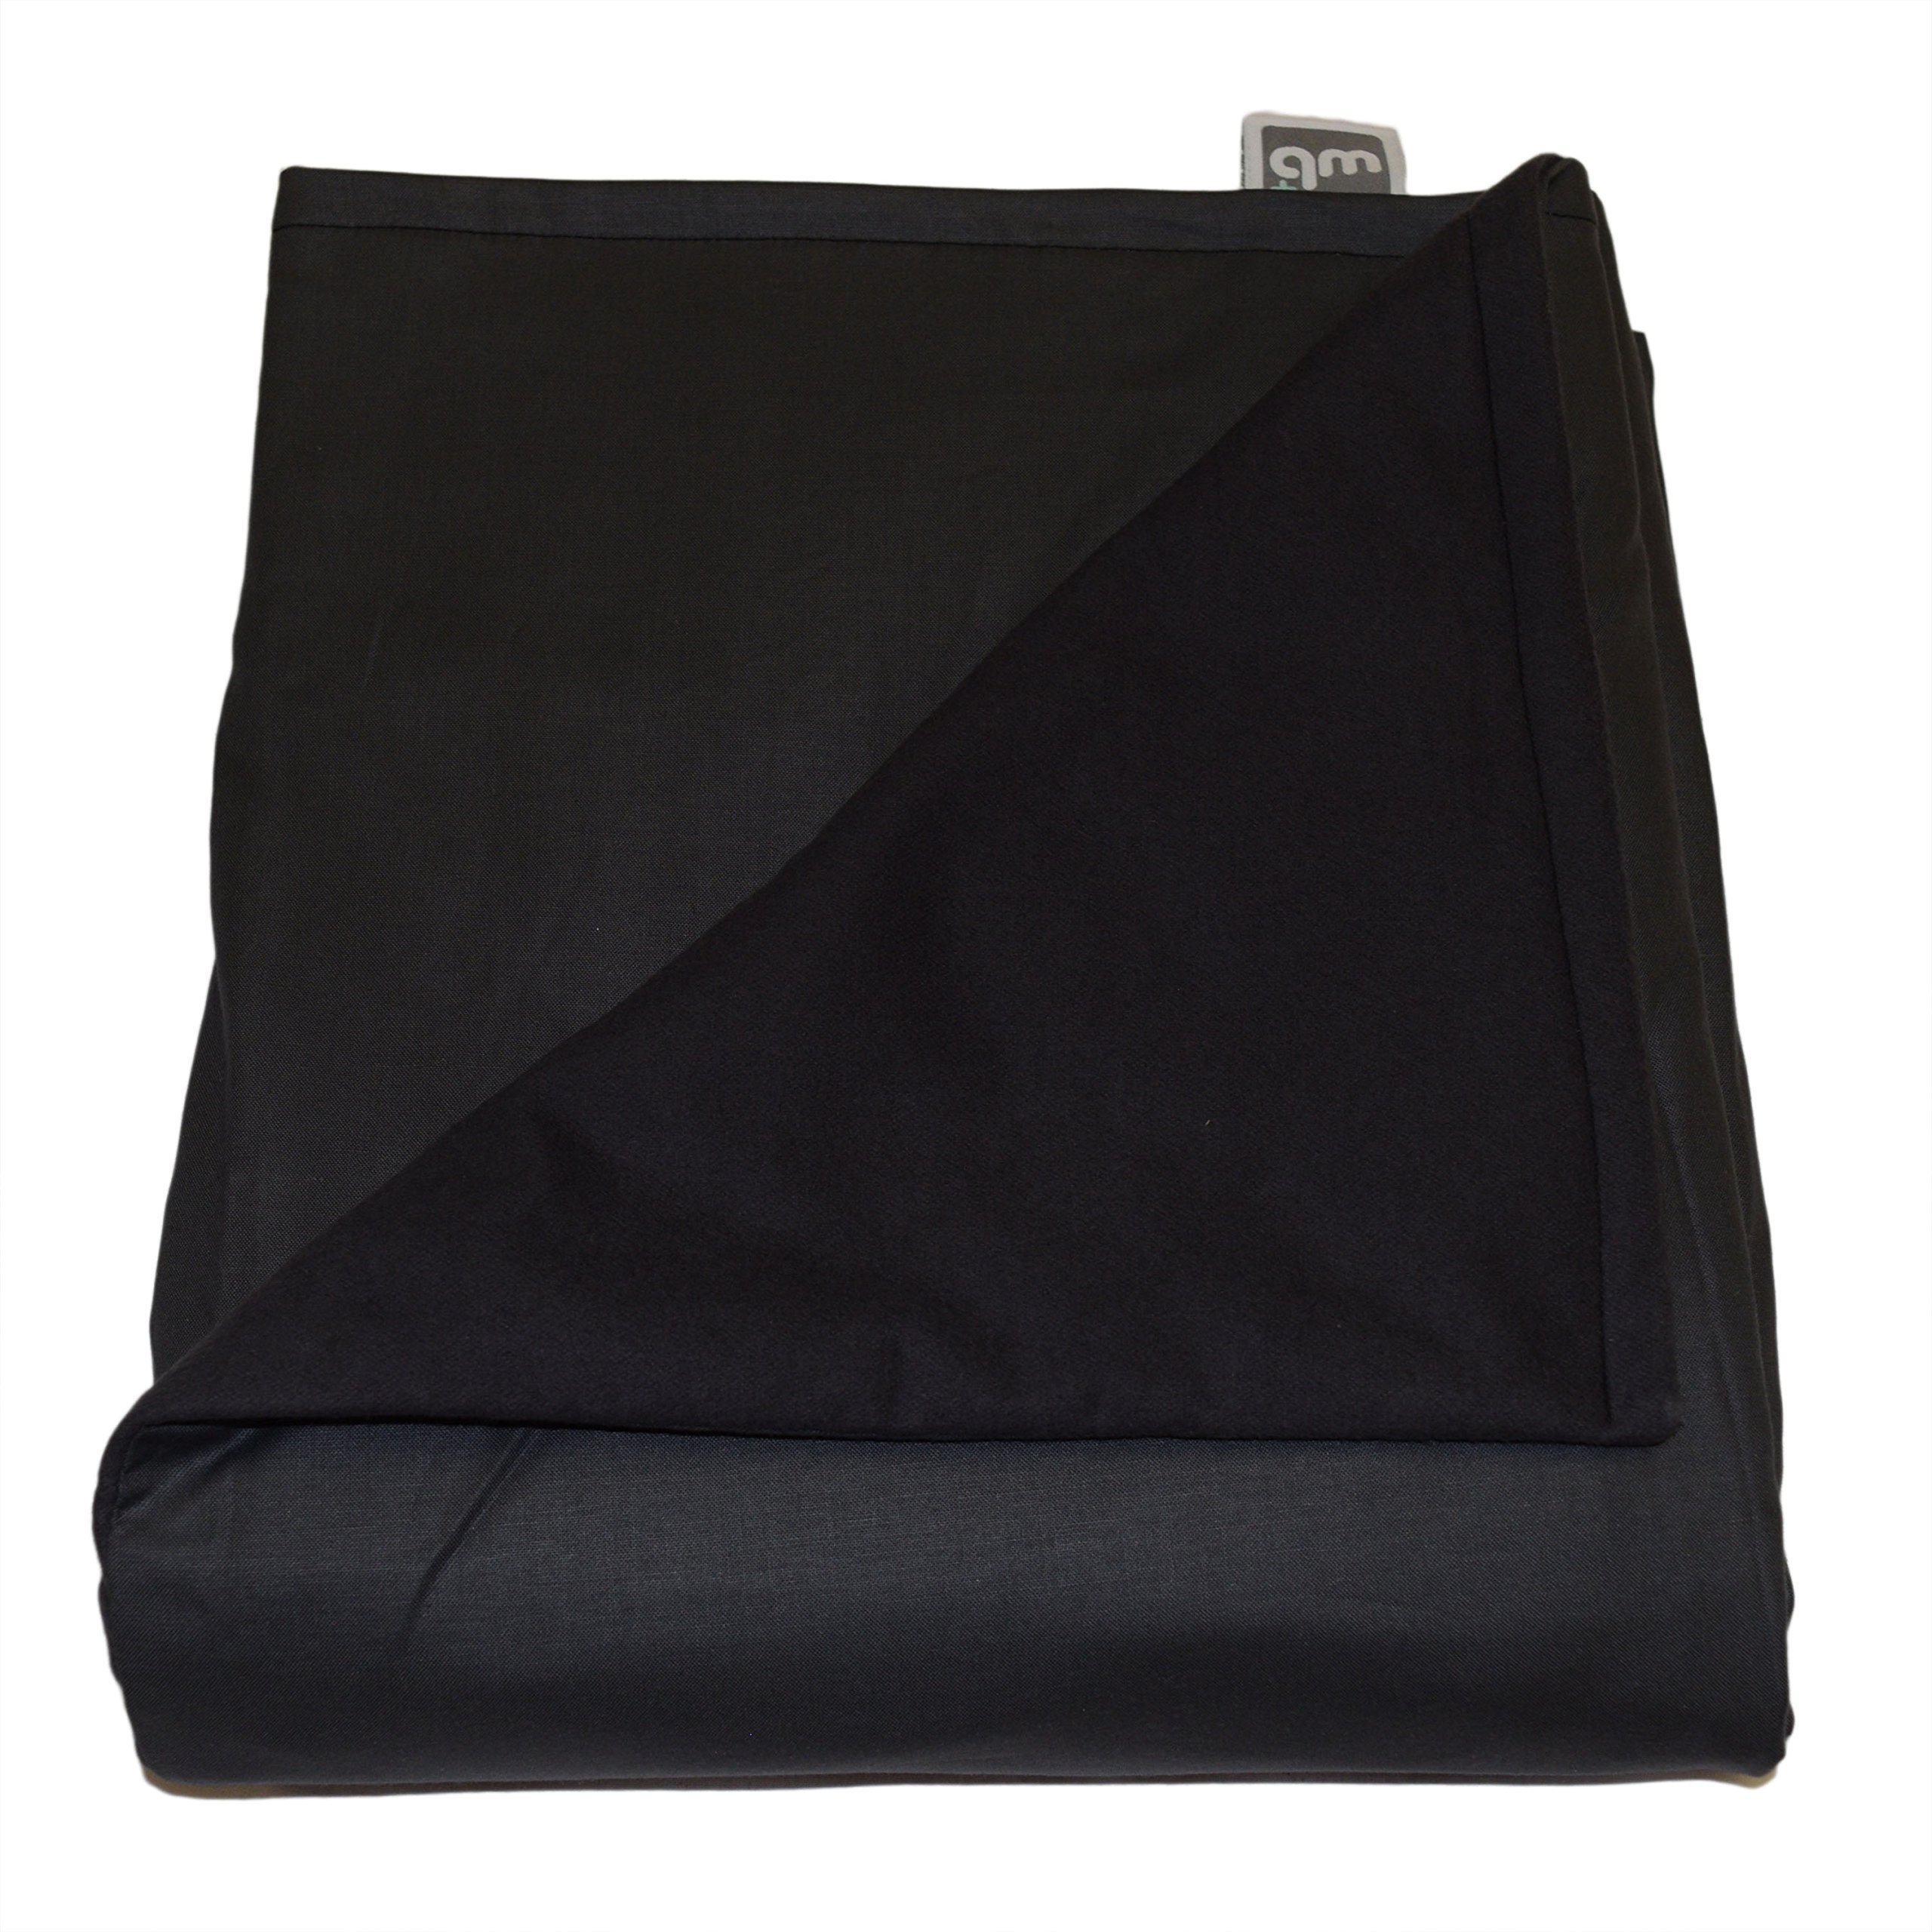 WEIGHTED BLANKETS PLUS LLC - MADE IN AMERICA - CHILD DELUXE SMALL WEIGHTED BLANKET - SMOKE - COTTON/FLANNEL (52'' L x 40'' W) 5lb MEDIUM PRESSURE.